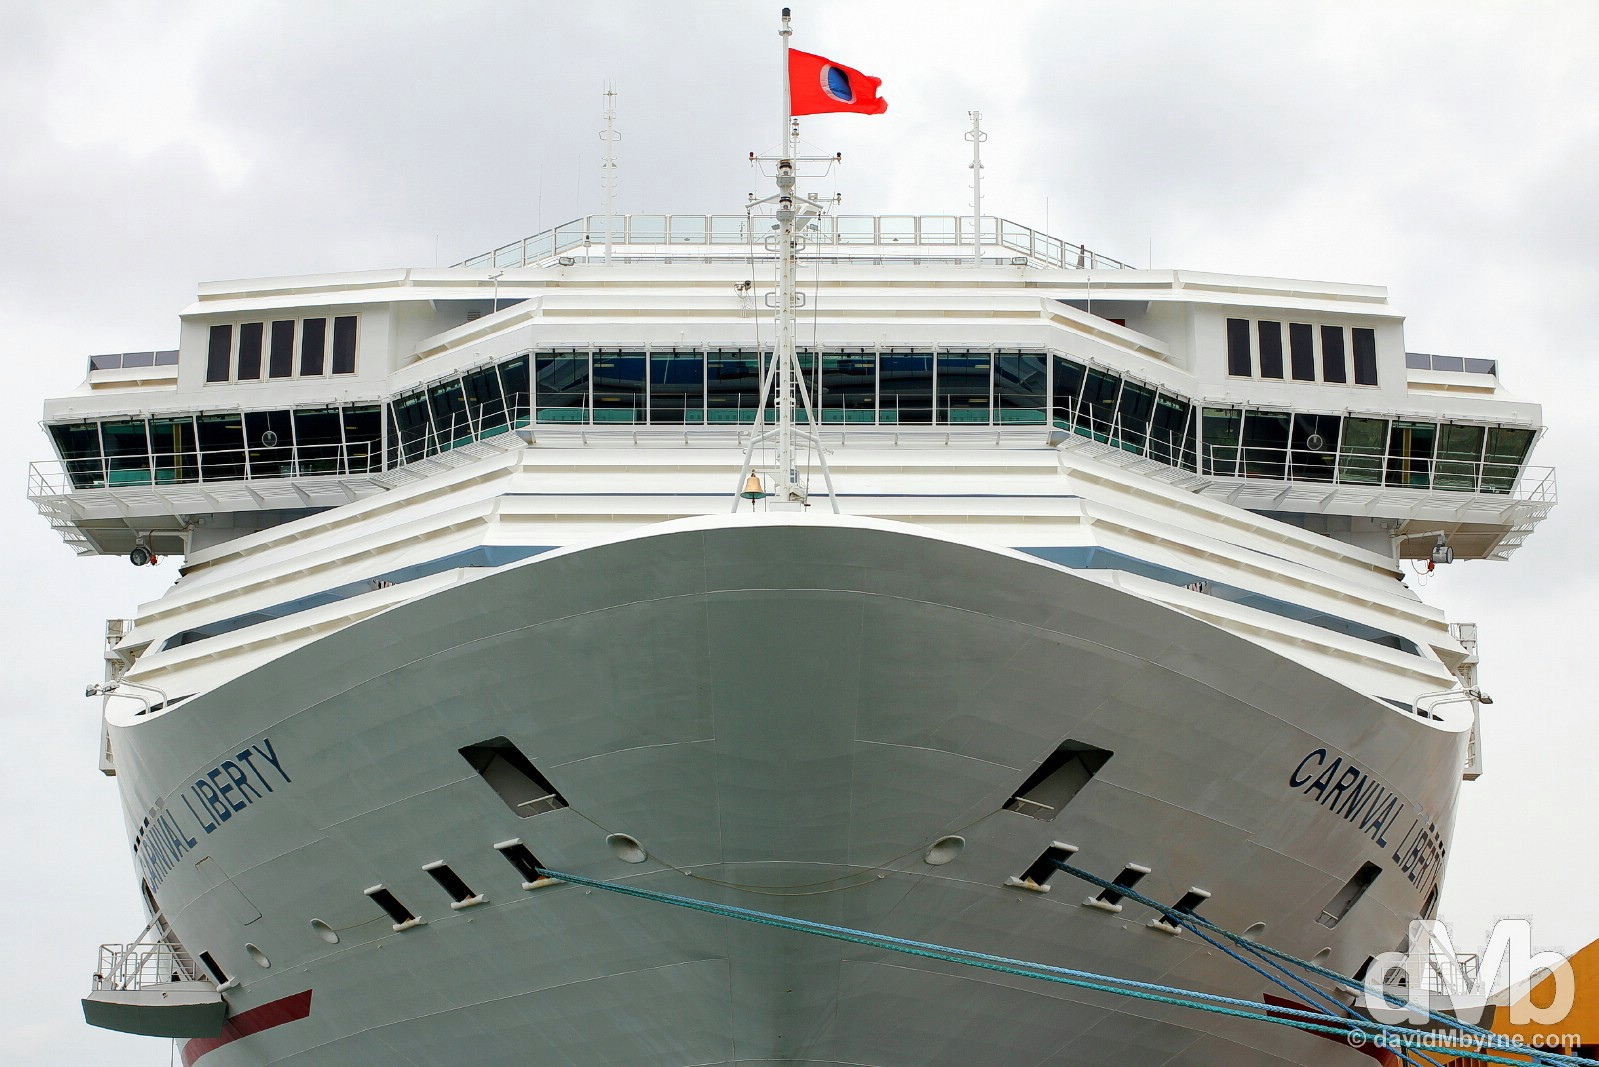 The Carnival Cruise Line's 110,000-tonne, 290 metre-long, 13 deck-high Carnival Liberty cruise ship docked in Old San Juan, Puerto Rico, Greater Antilles. May 31, 2015.